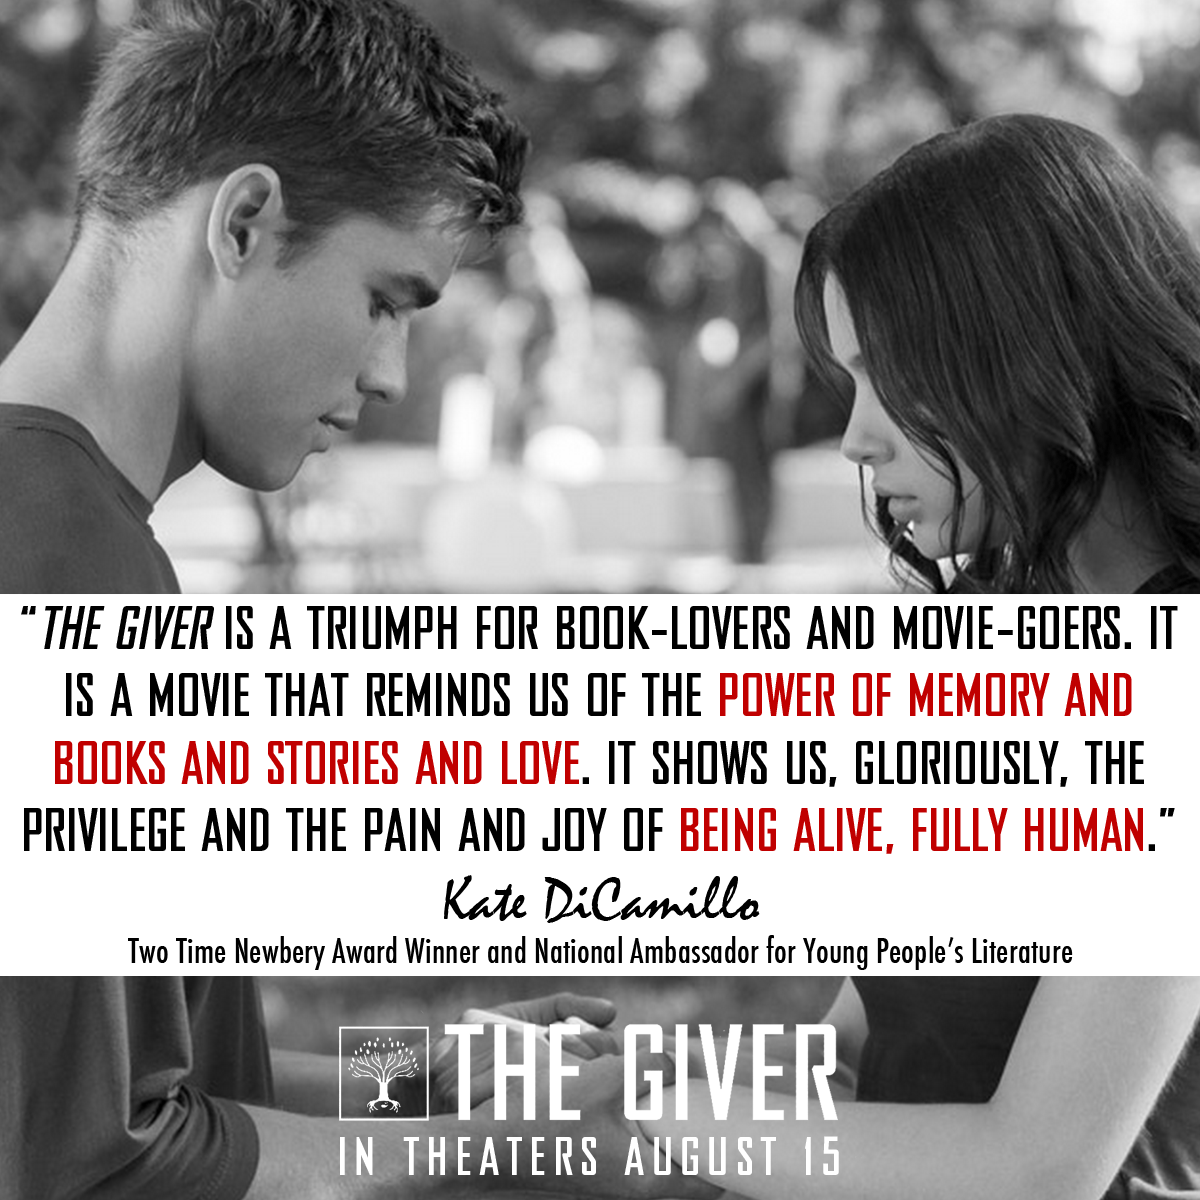 """Kate DiCamillo says THE GIVER movie is a """"triumph for book-lovers & movie-goers"""" post thumbnail"""